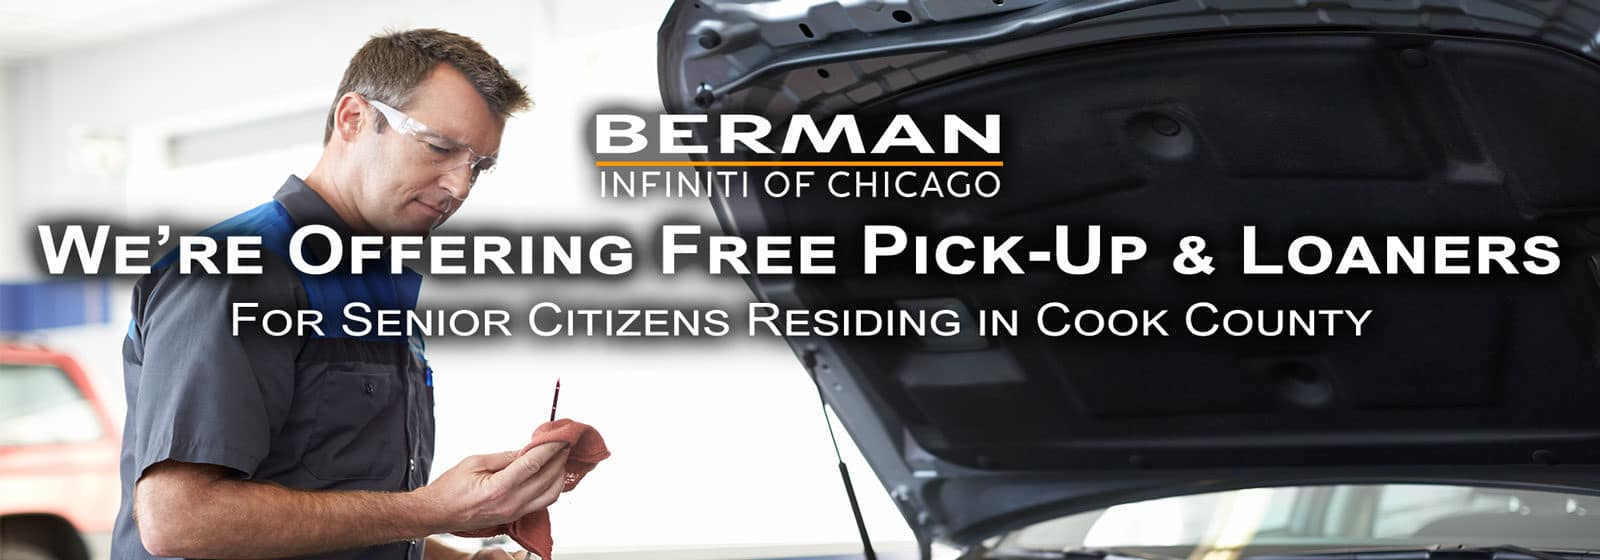 We are offering free pick up and loaners to senior citizens in Cook County